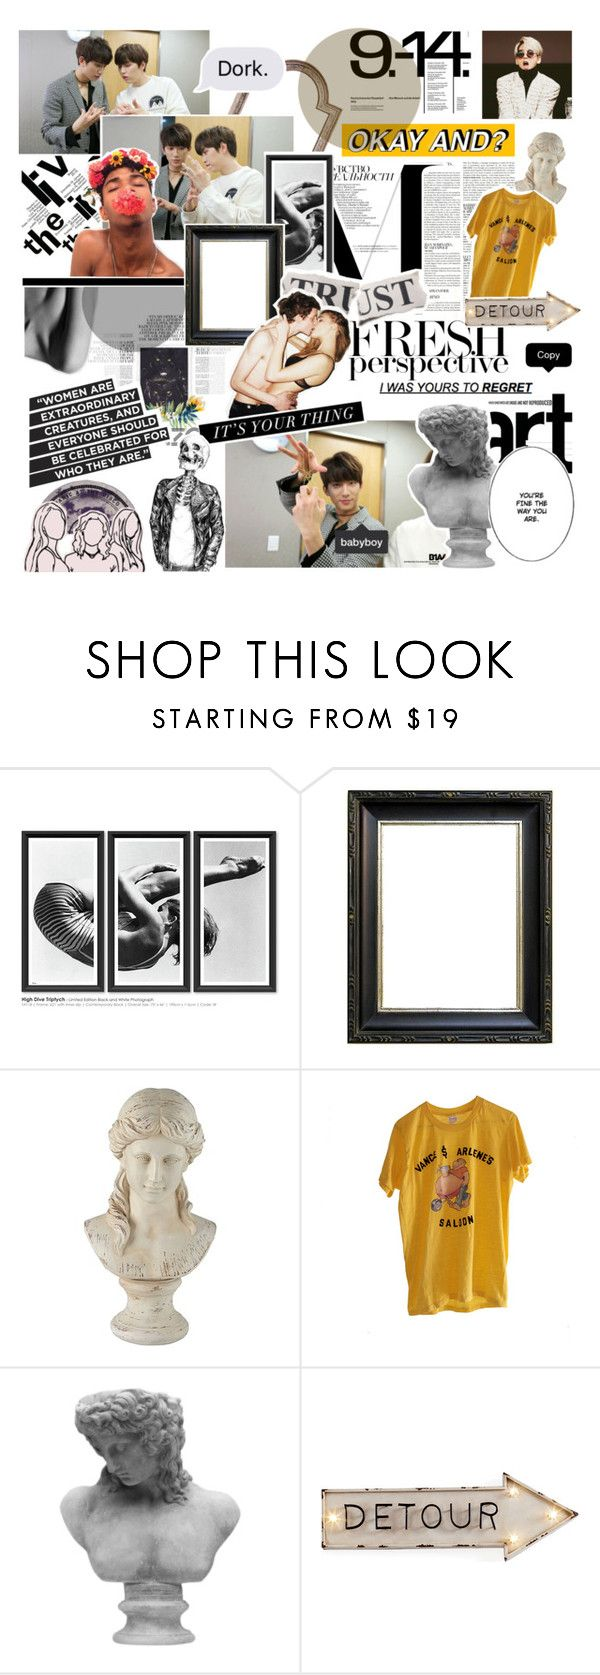 """¬ ADORATiON UPGRADE. (❁˘◡˘❁)"" by monochromatics ❤ liked on Polyvore featuring Ødd., McGinn, Prada, Trowbridge, Universal Lighting and Decor, Visionnaire and Dot & Bo"